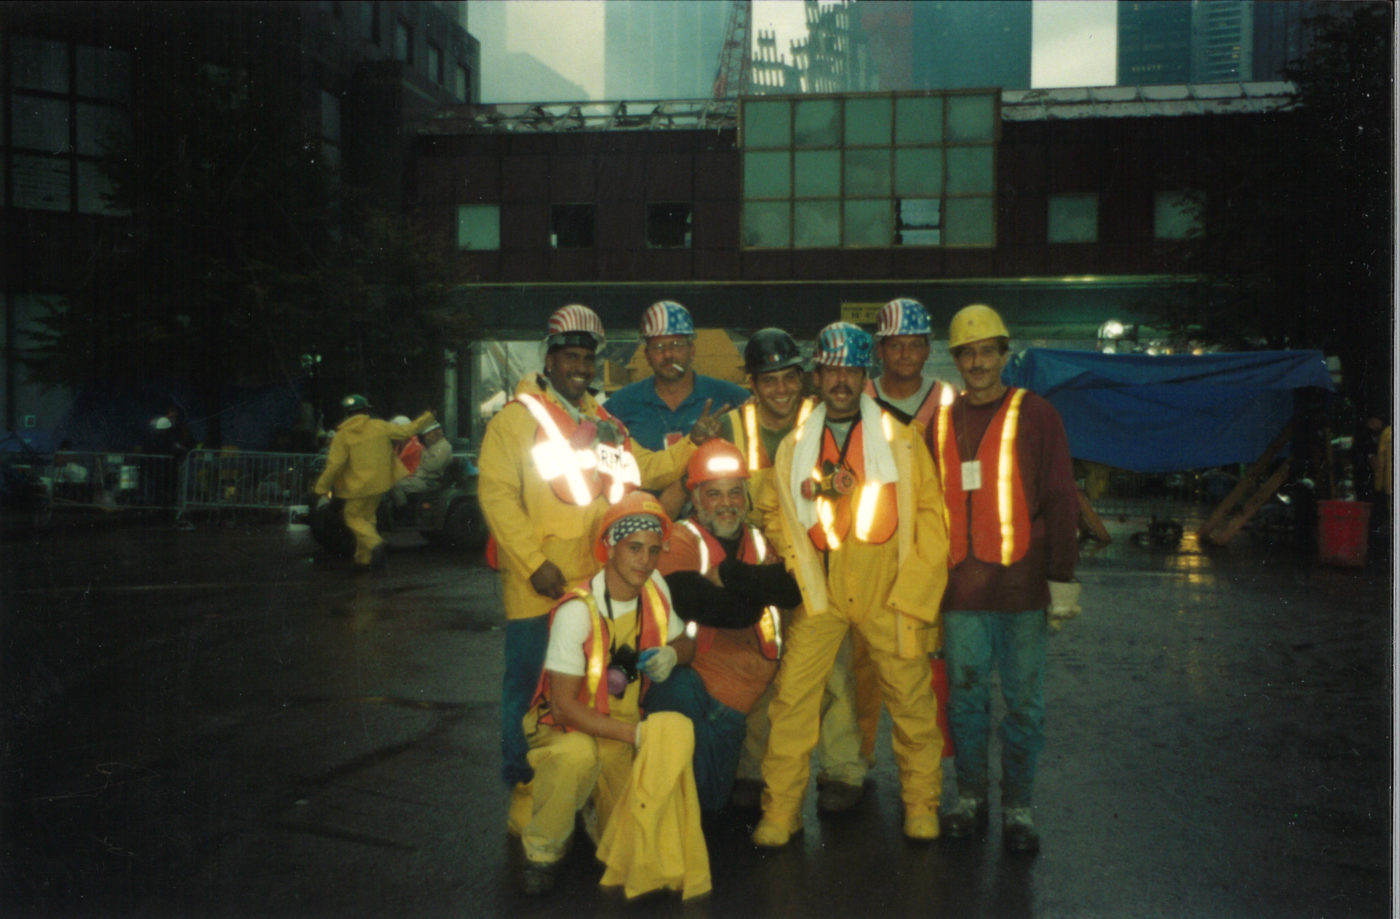 Eight Unknown Workers Pose for Photo